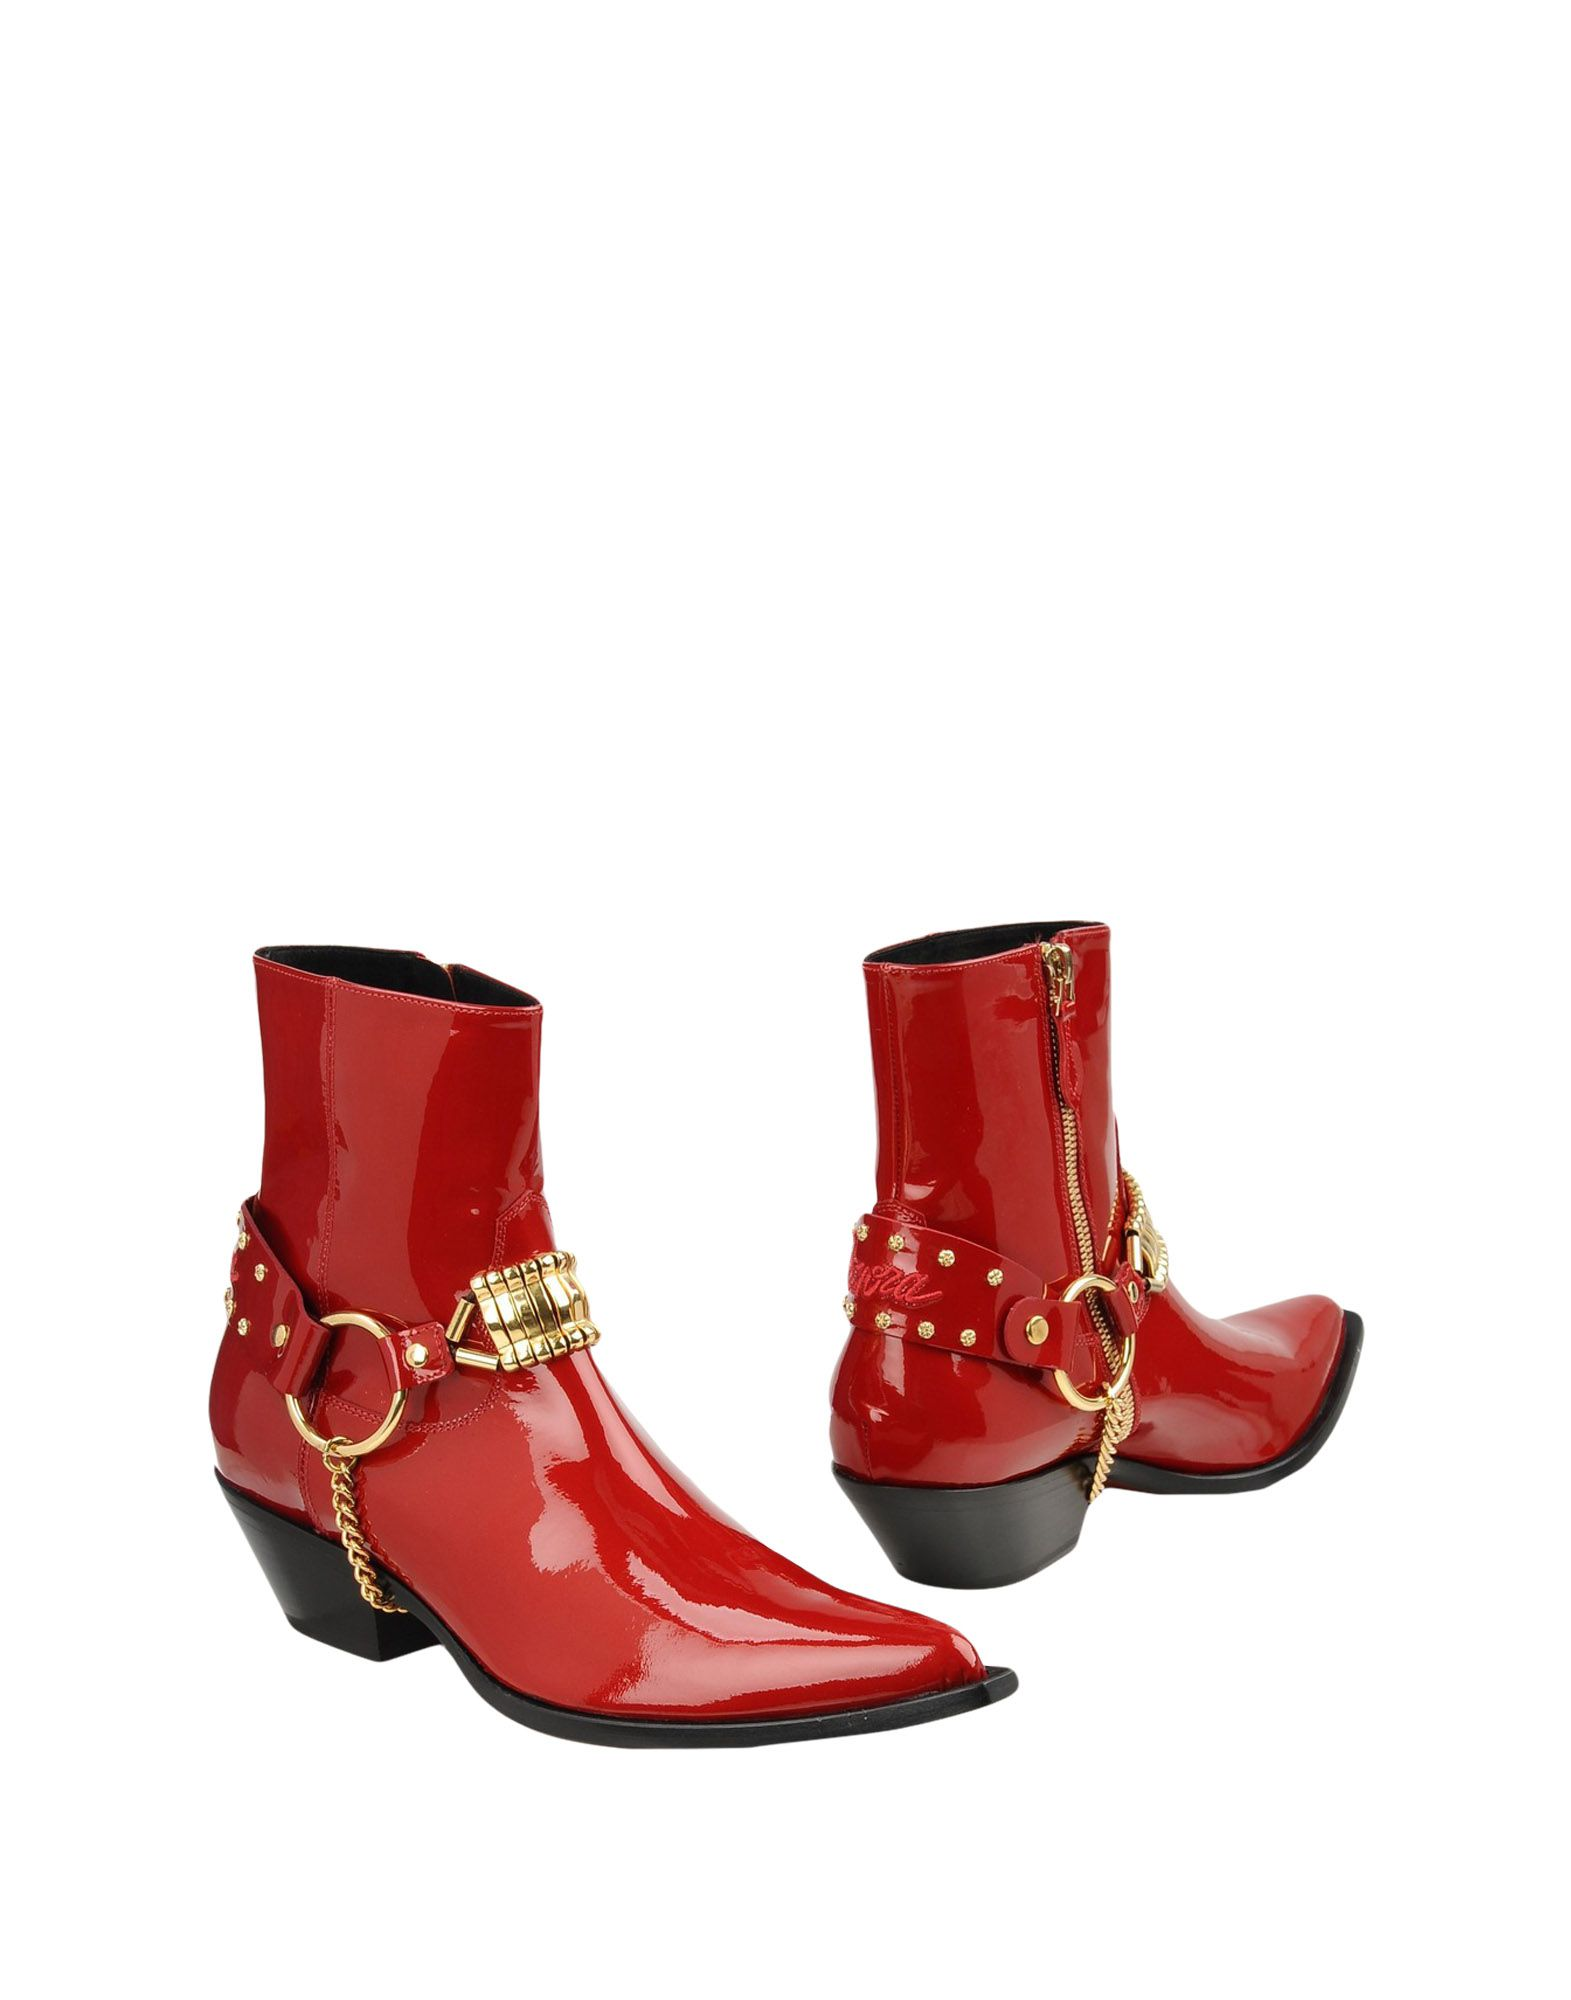 SONORA Ankle Boots in Red